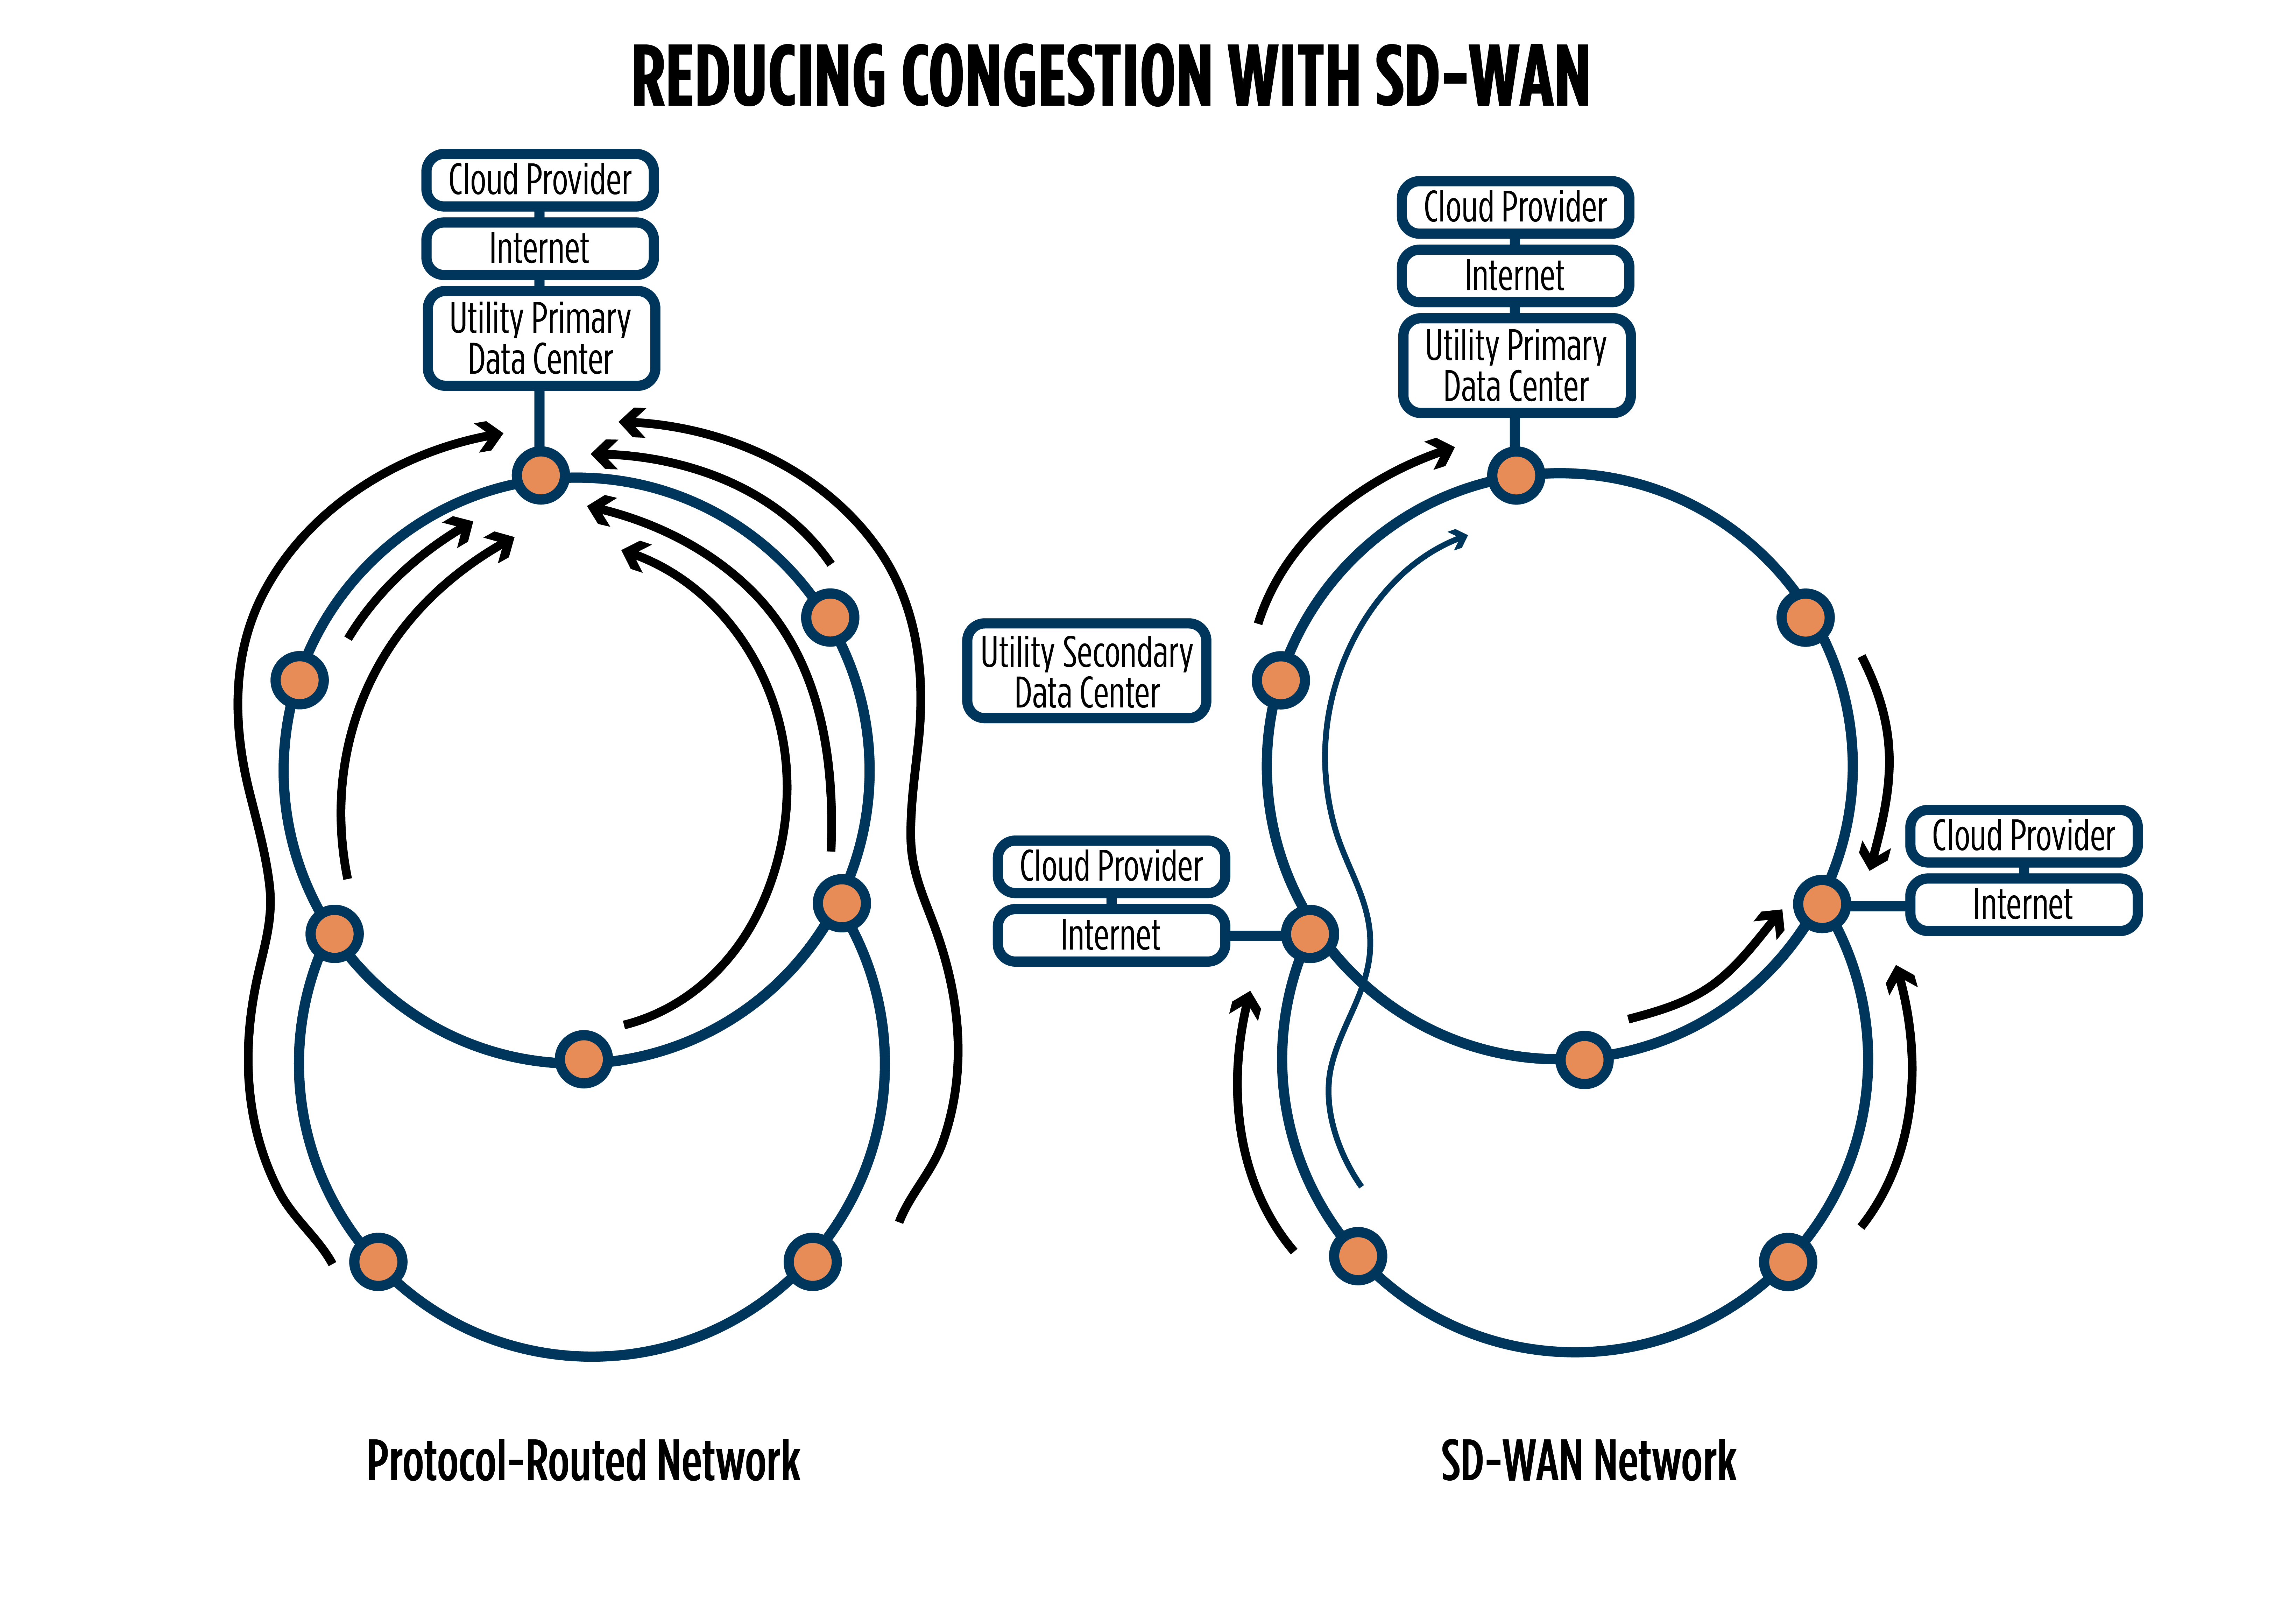 Reducing-Congestion-with-SD-WAN-Burns-McDonnell